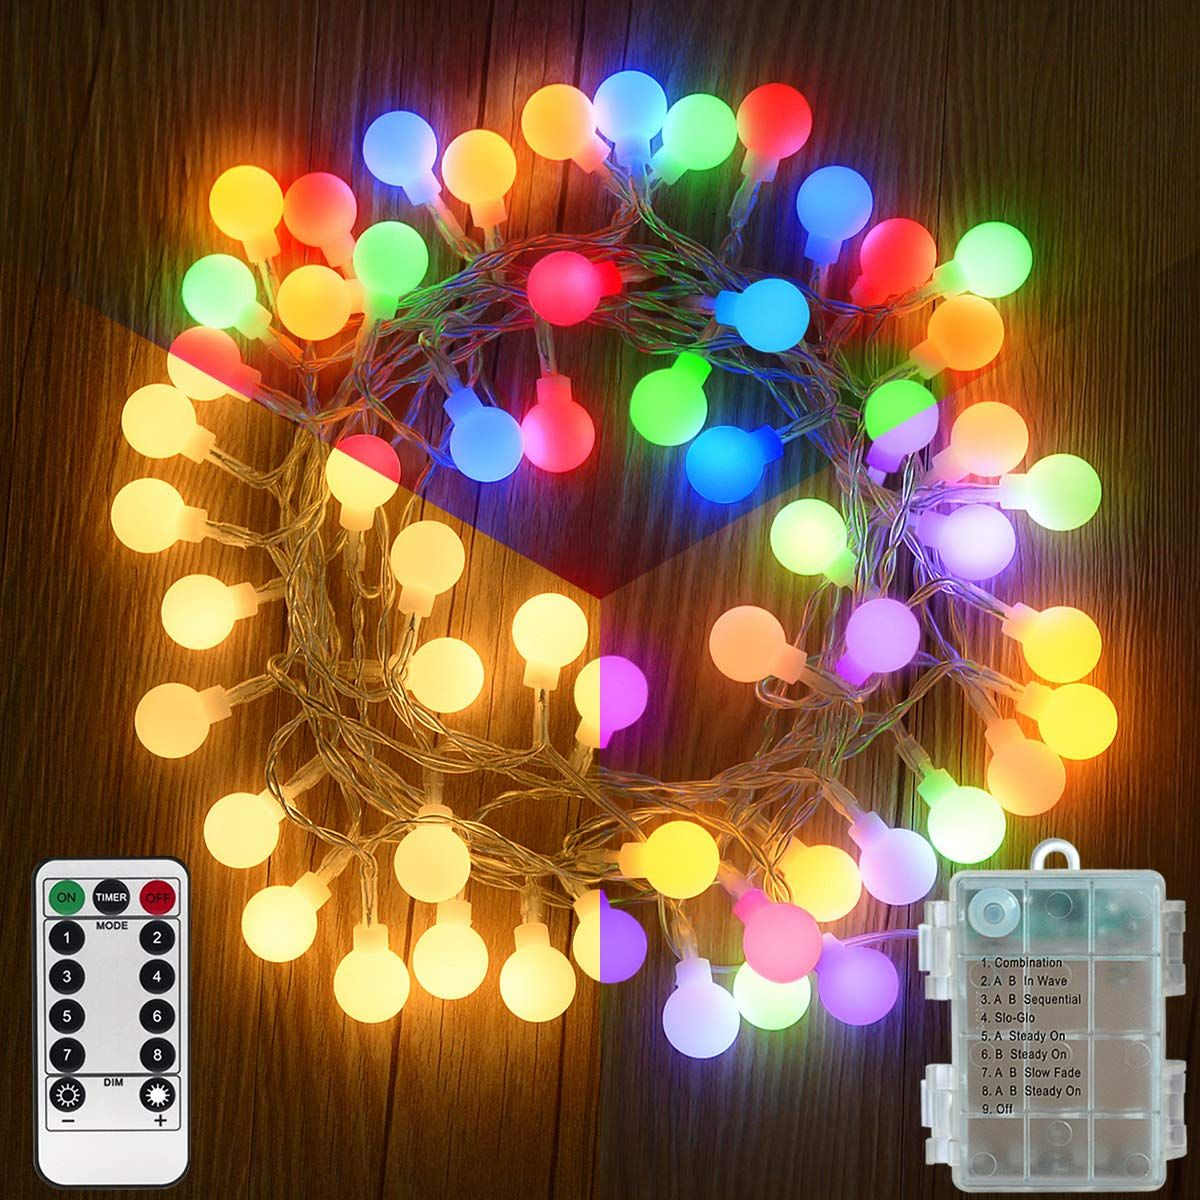 Homeleo 50 Led Color Changing Globe Fairy Lights Battery Operated Outdoor Christmas Lig Outdoor Christmas Lights Color Changing Led Christmas Lights